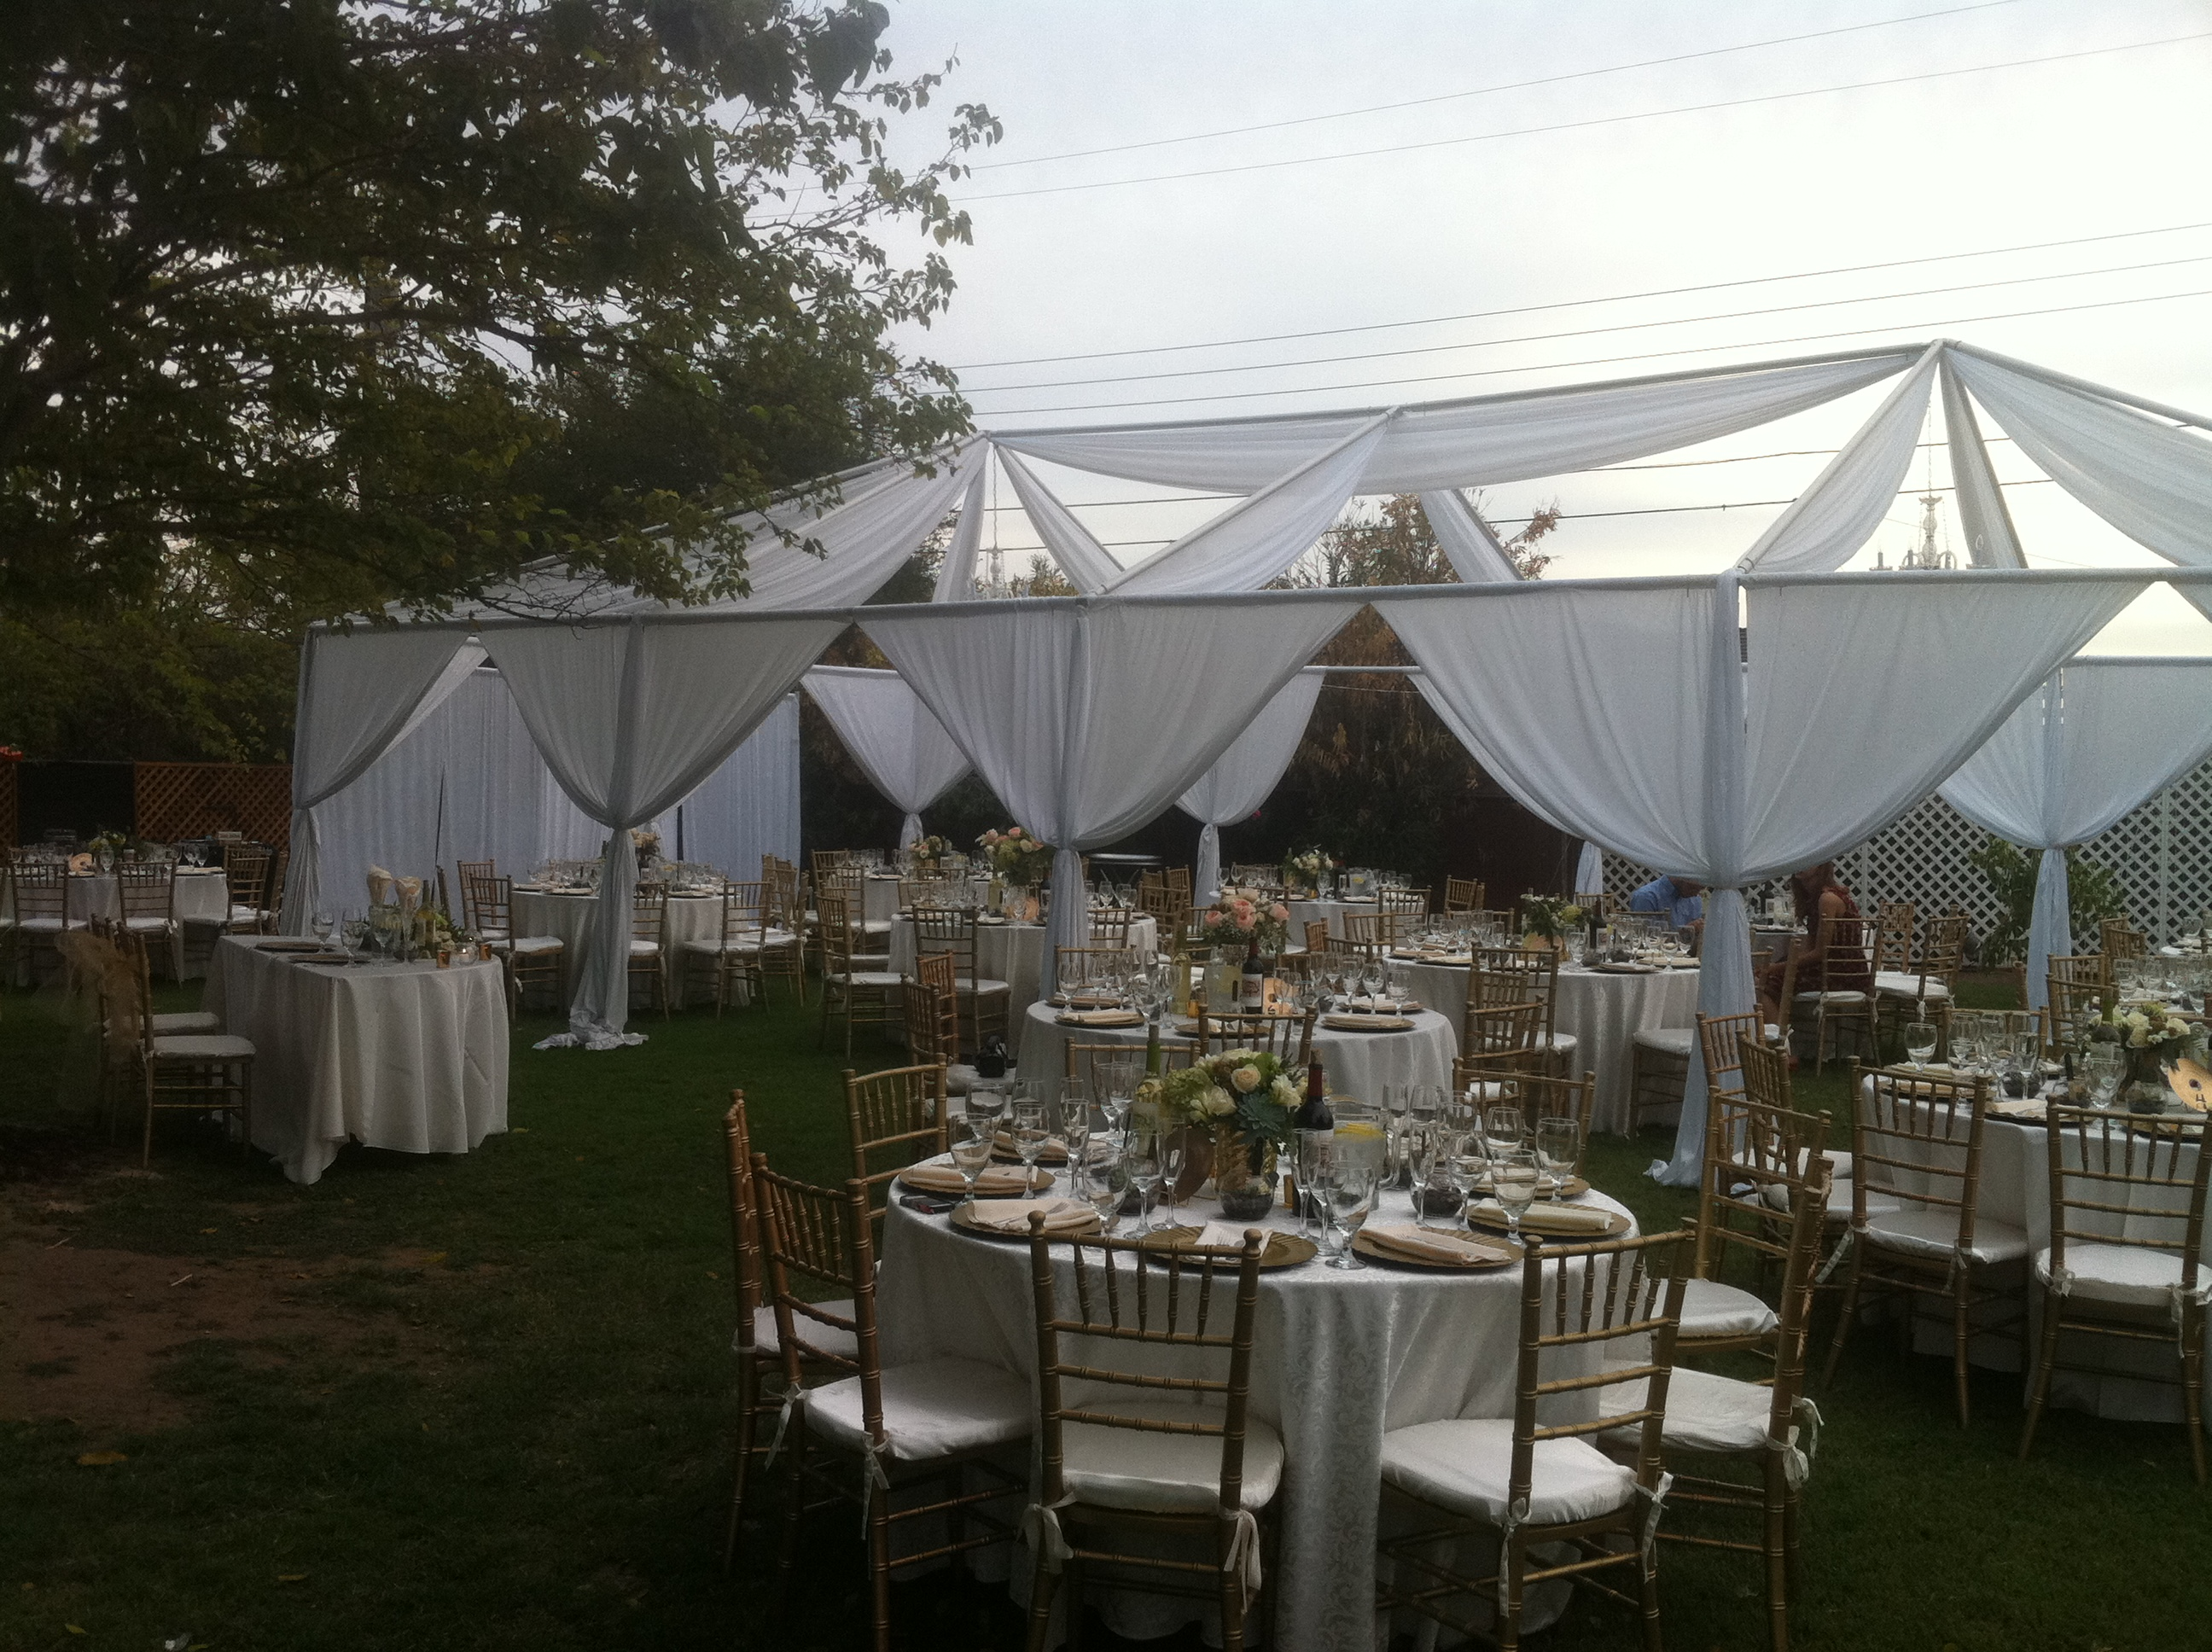 Tent And Chair Rental Party Rental San Diego La Jolla Chula Vista 818 636 4104